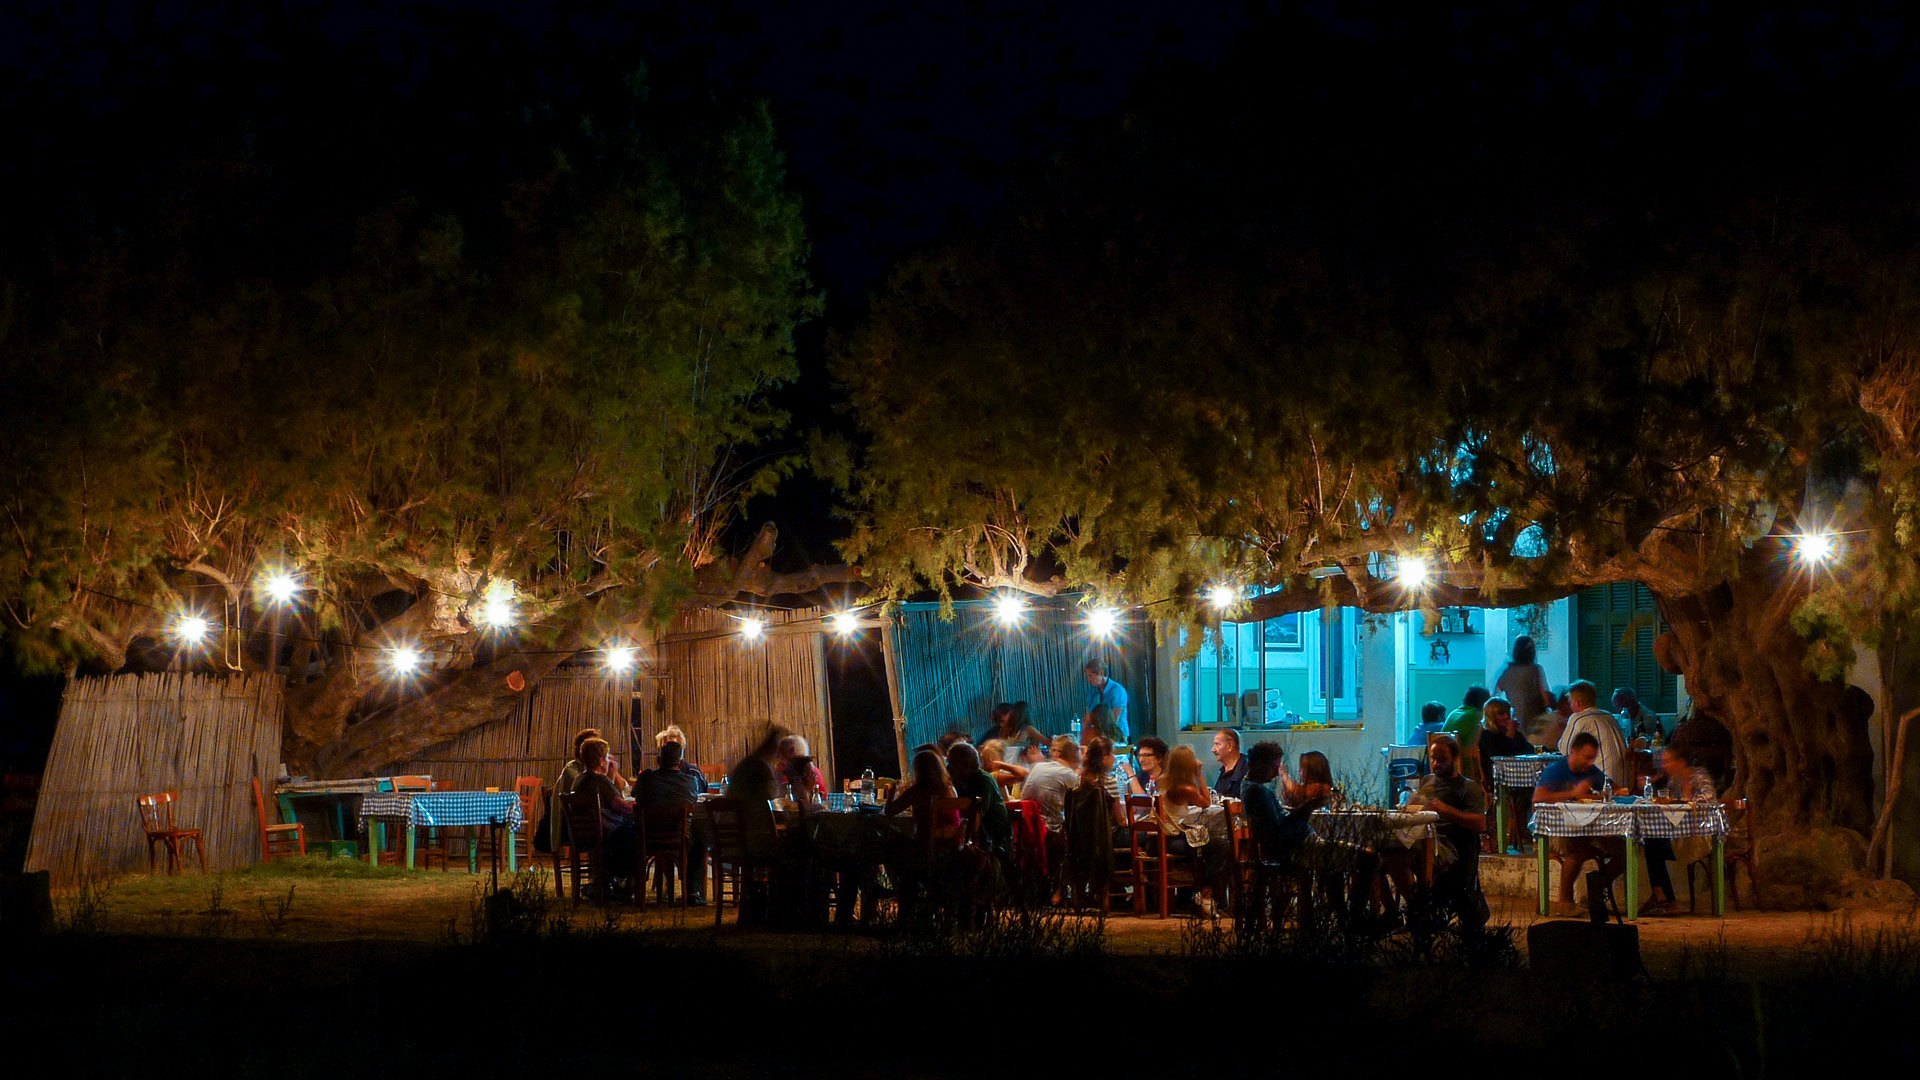 At night Serifos becomes one big party as the tables fill with appetisers, ouzo and other delicacies